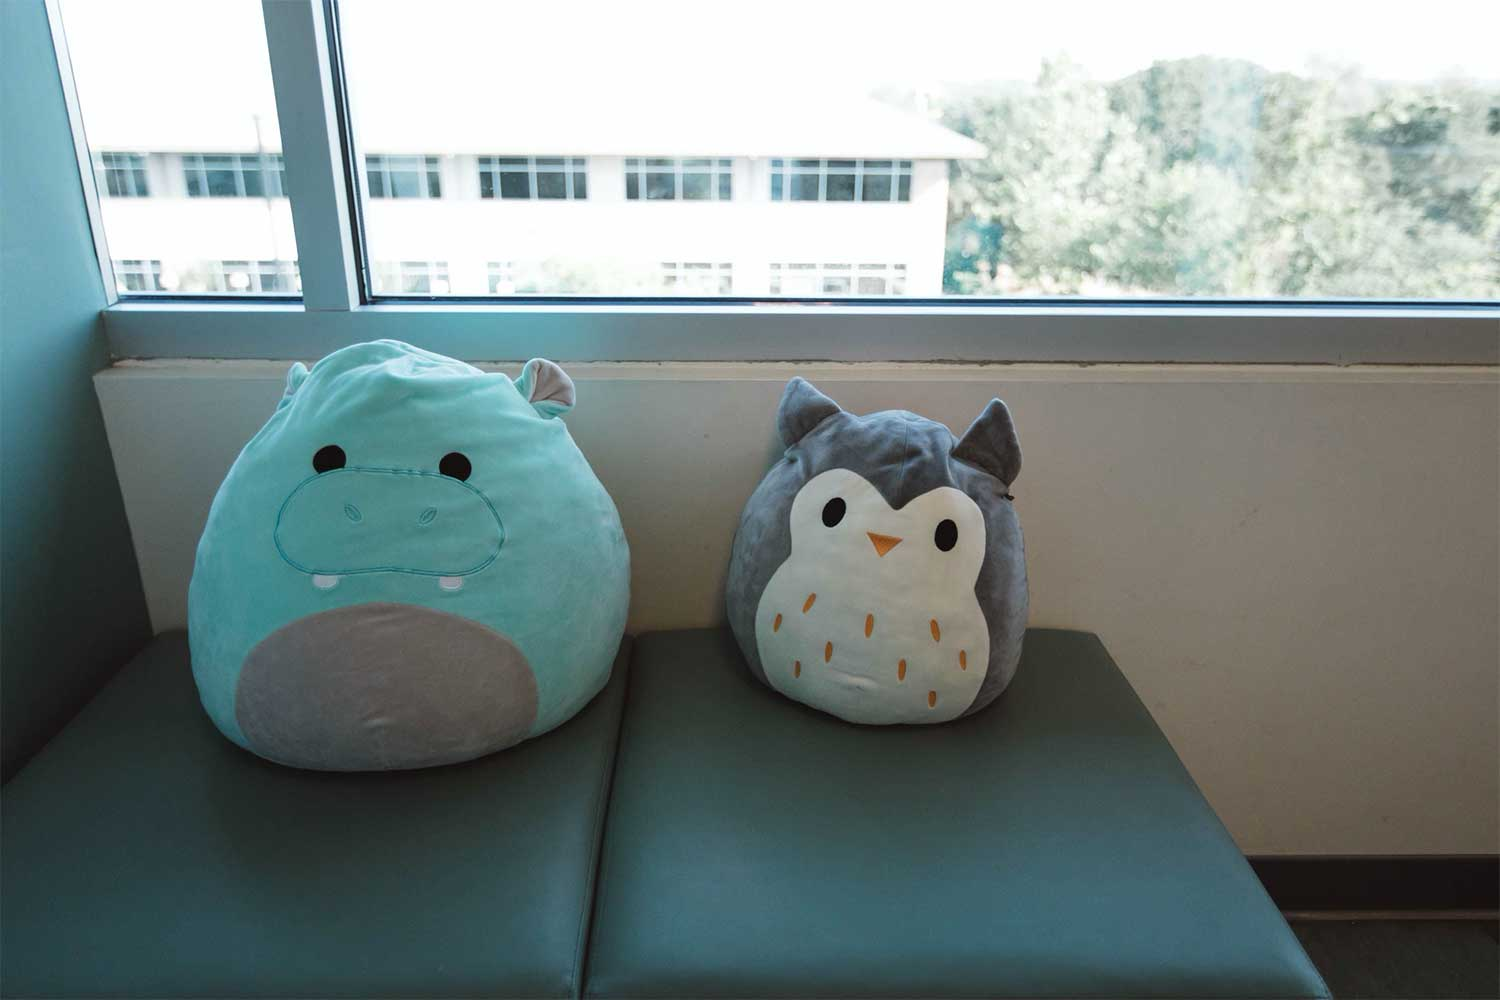 Photo of two stuffed animal pillows on a bench.